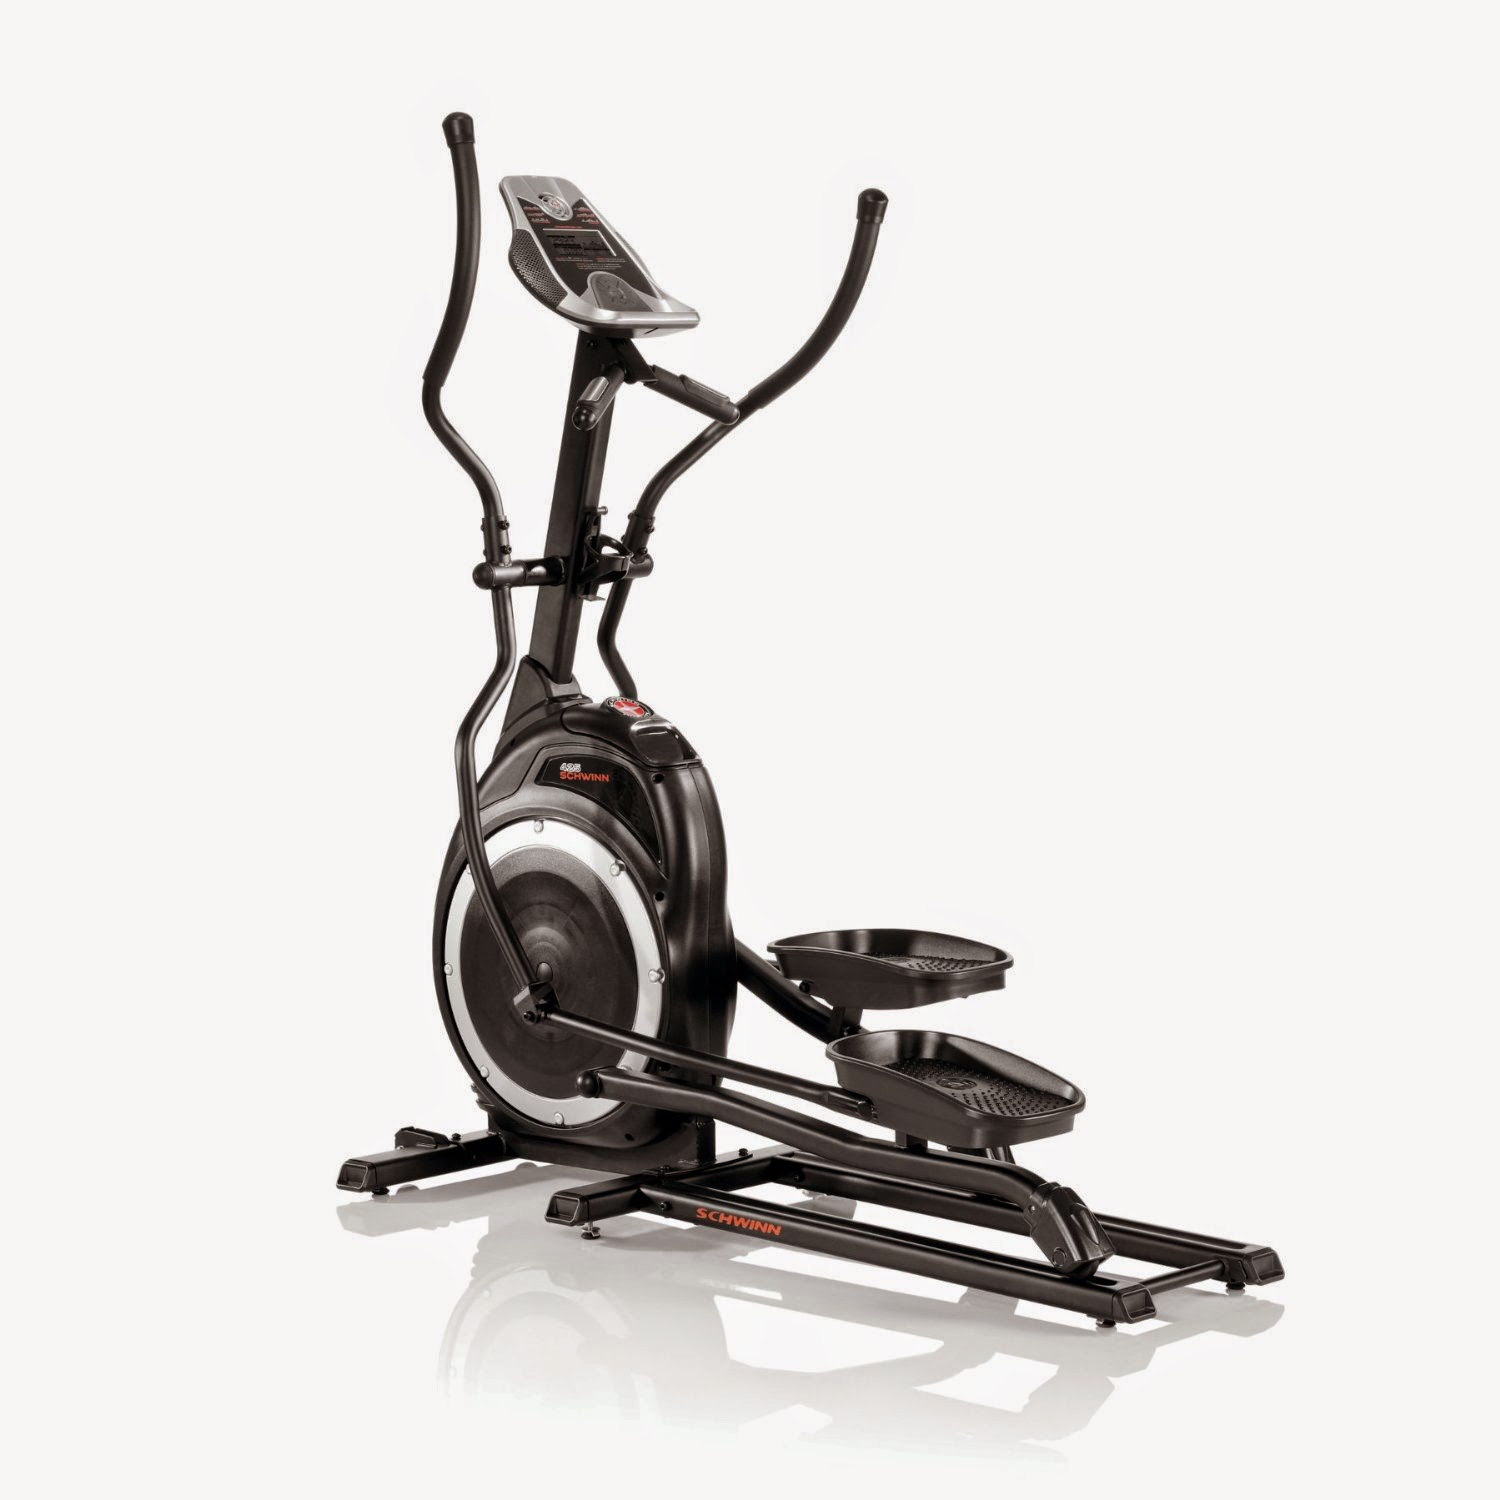 Schwinn 425 Elliptical Trainer, review features, 10 workout programs, 16 levels of ECB magnetic resistance, low-mid range elliptical machine